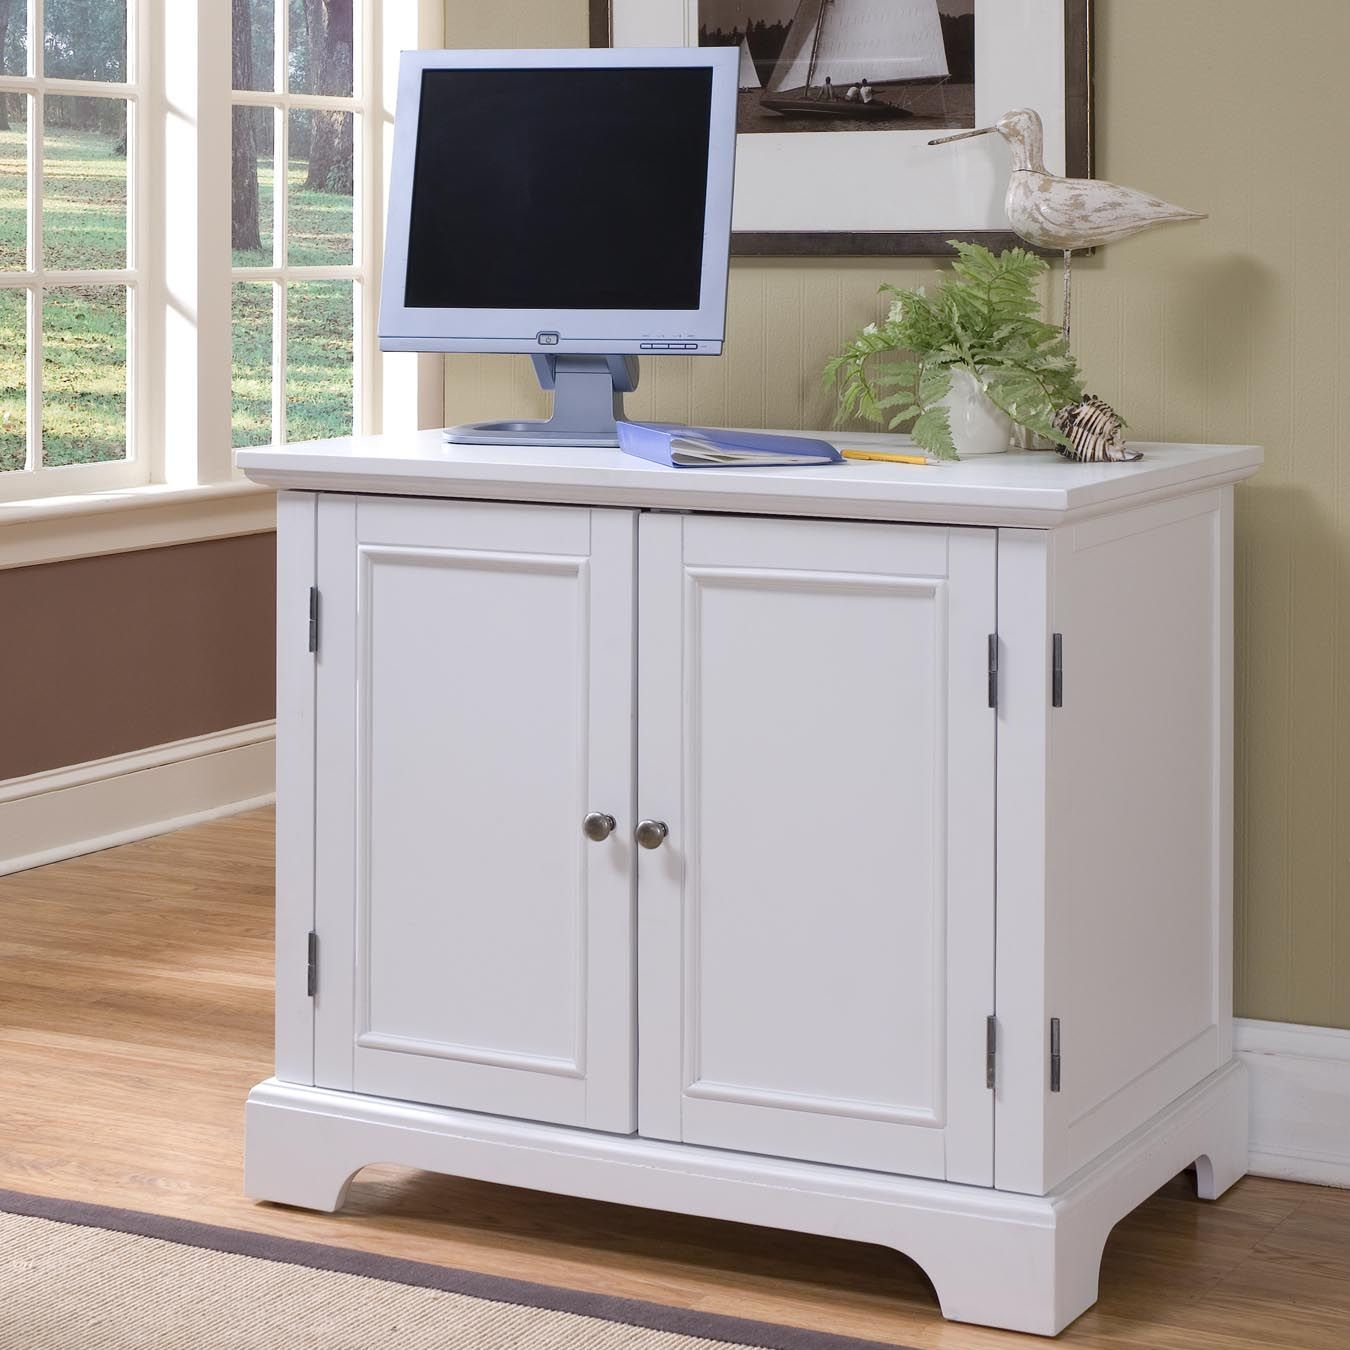 Merveilleux Home Styles Naples Compact Computer Armoire   Clear The Clutter In Your Home  Office With The Home Styles Naples Compact Computer Armoire .